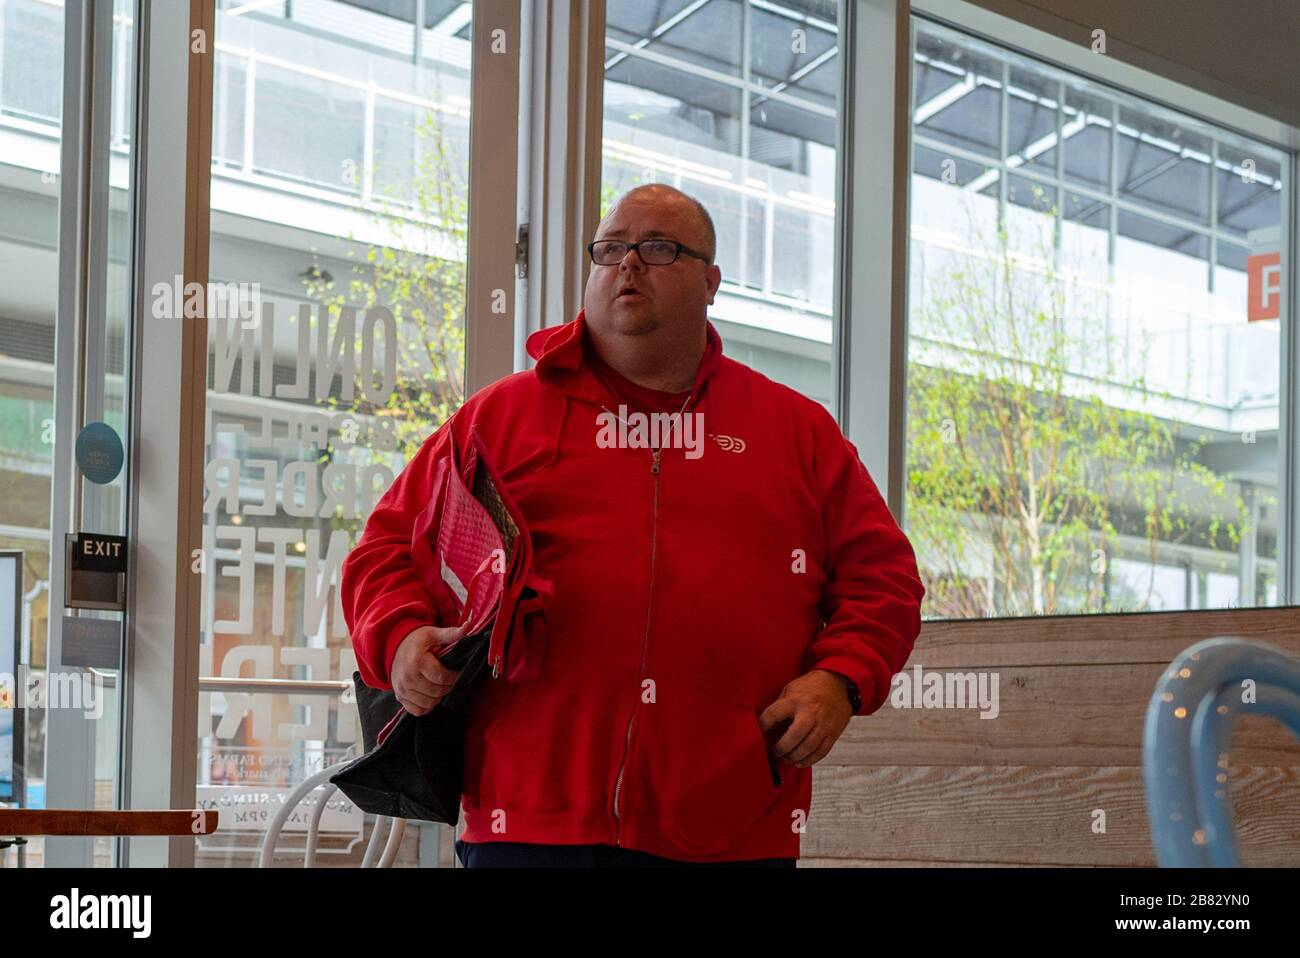 A Doordash driver wearing a red branded hoodie and carrying a food bag picks up an order at a restaurant in Contra Costa County, San Ramon, California during an outbreak of the COVID-19 coronavirus, March 14, 2020. Amid the outbreak, many residents have turned to food delivery services as a way to obtain meals, as restaurants have been ordered to close their dining rooms. () Stock Photo